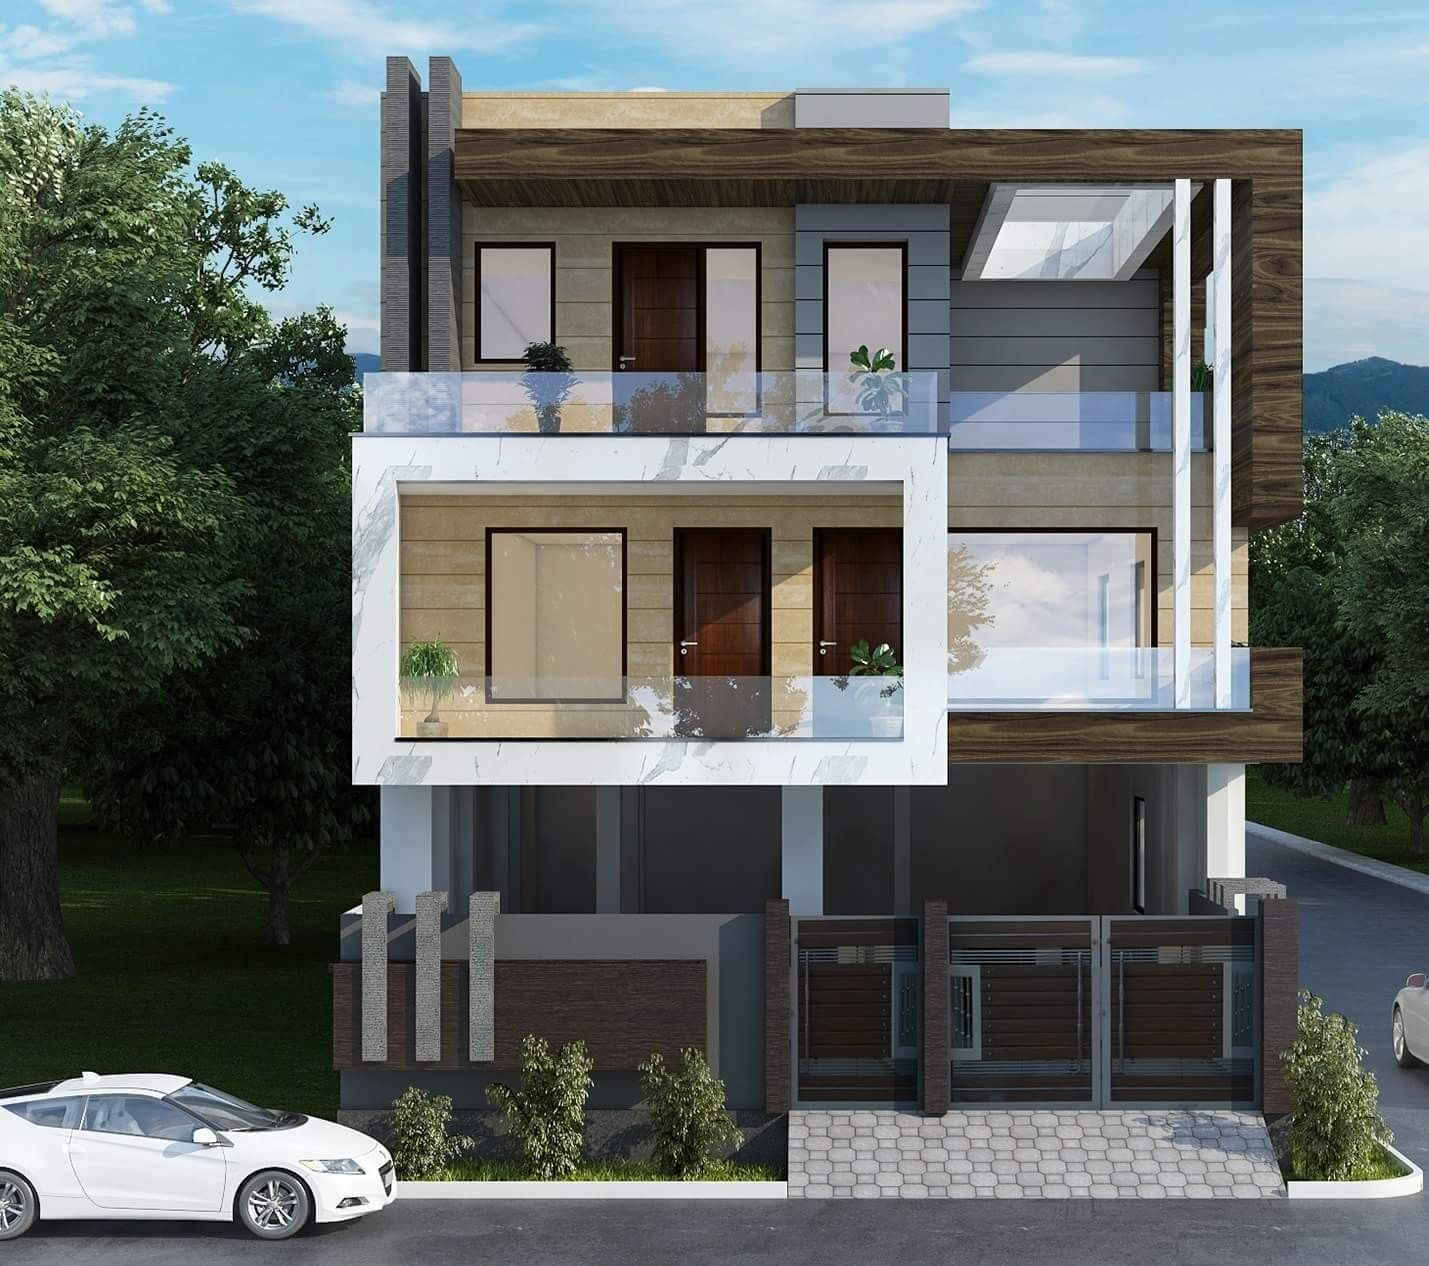 Modern Building Designs 2019: Pin By Dwarkadhish&Co. On Elevation-2 In 2019